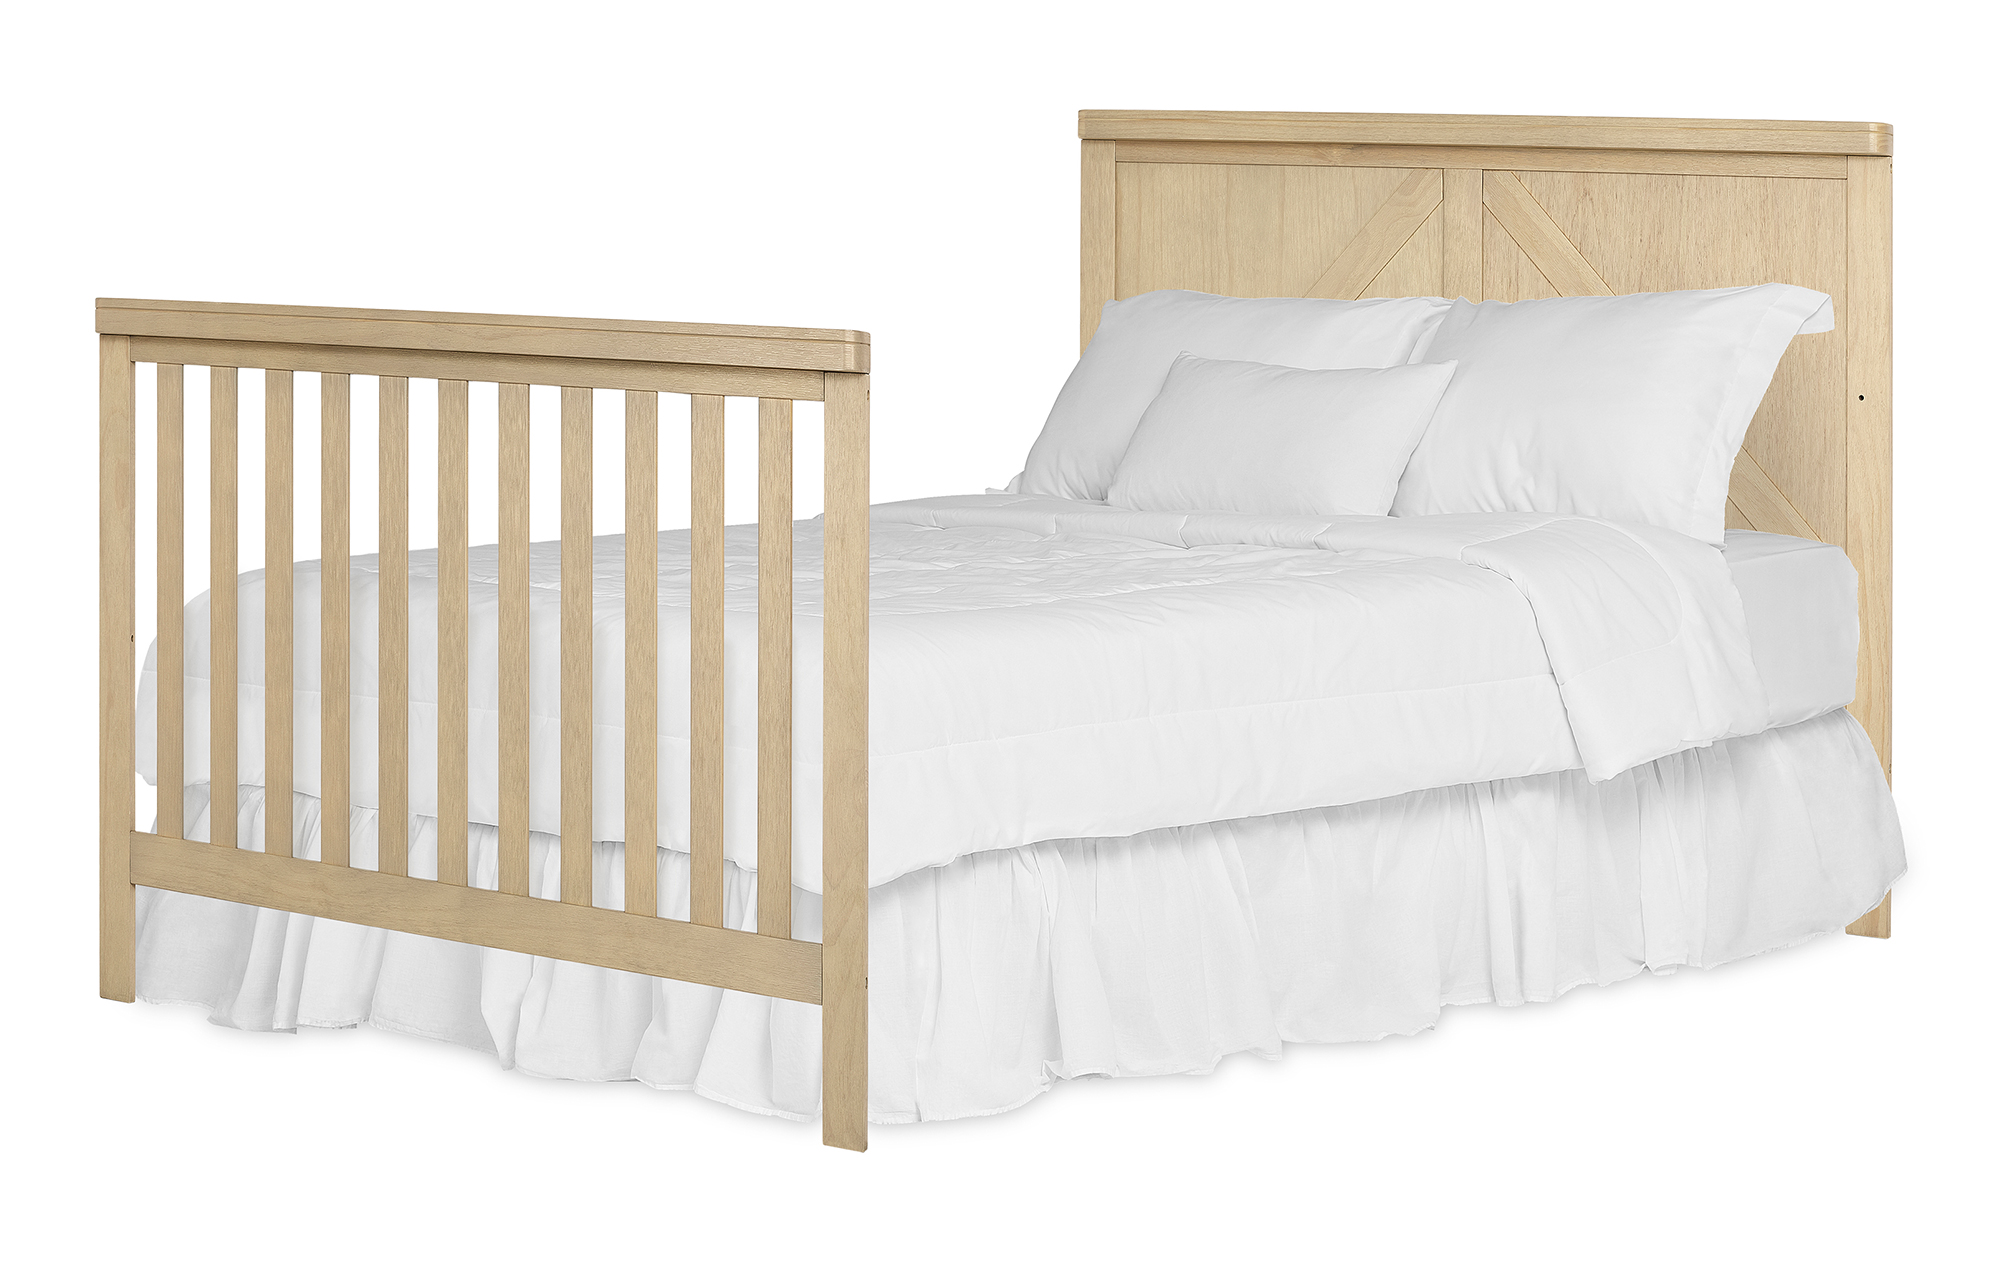 773-SC Meadowland Full Size Bed Headfoot